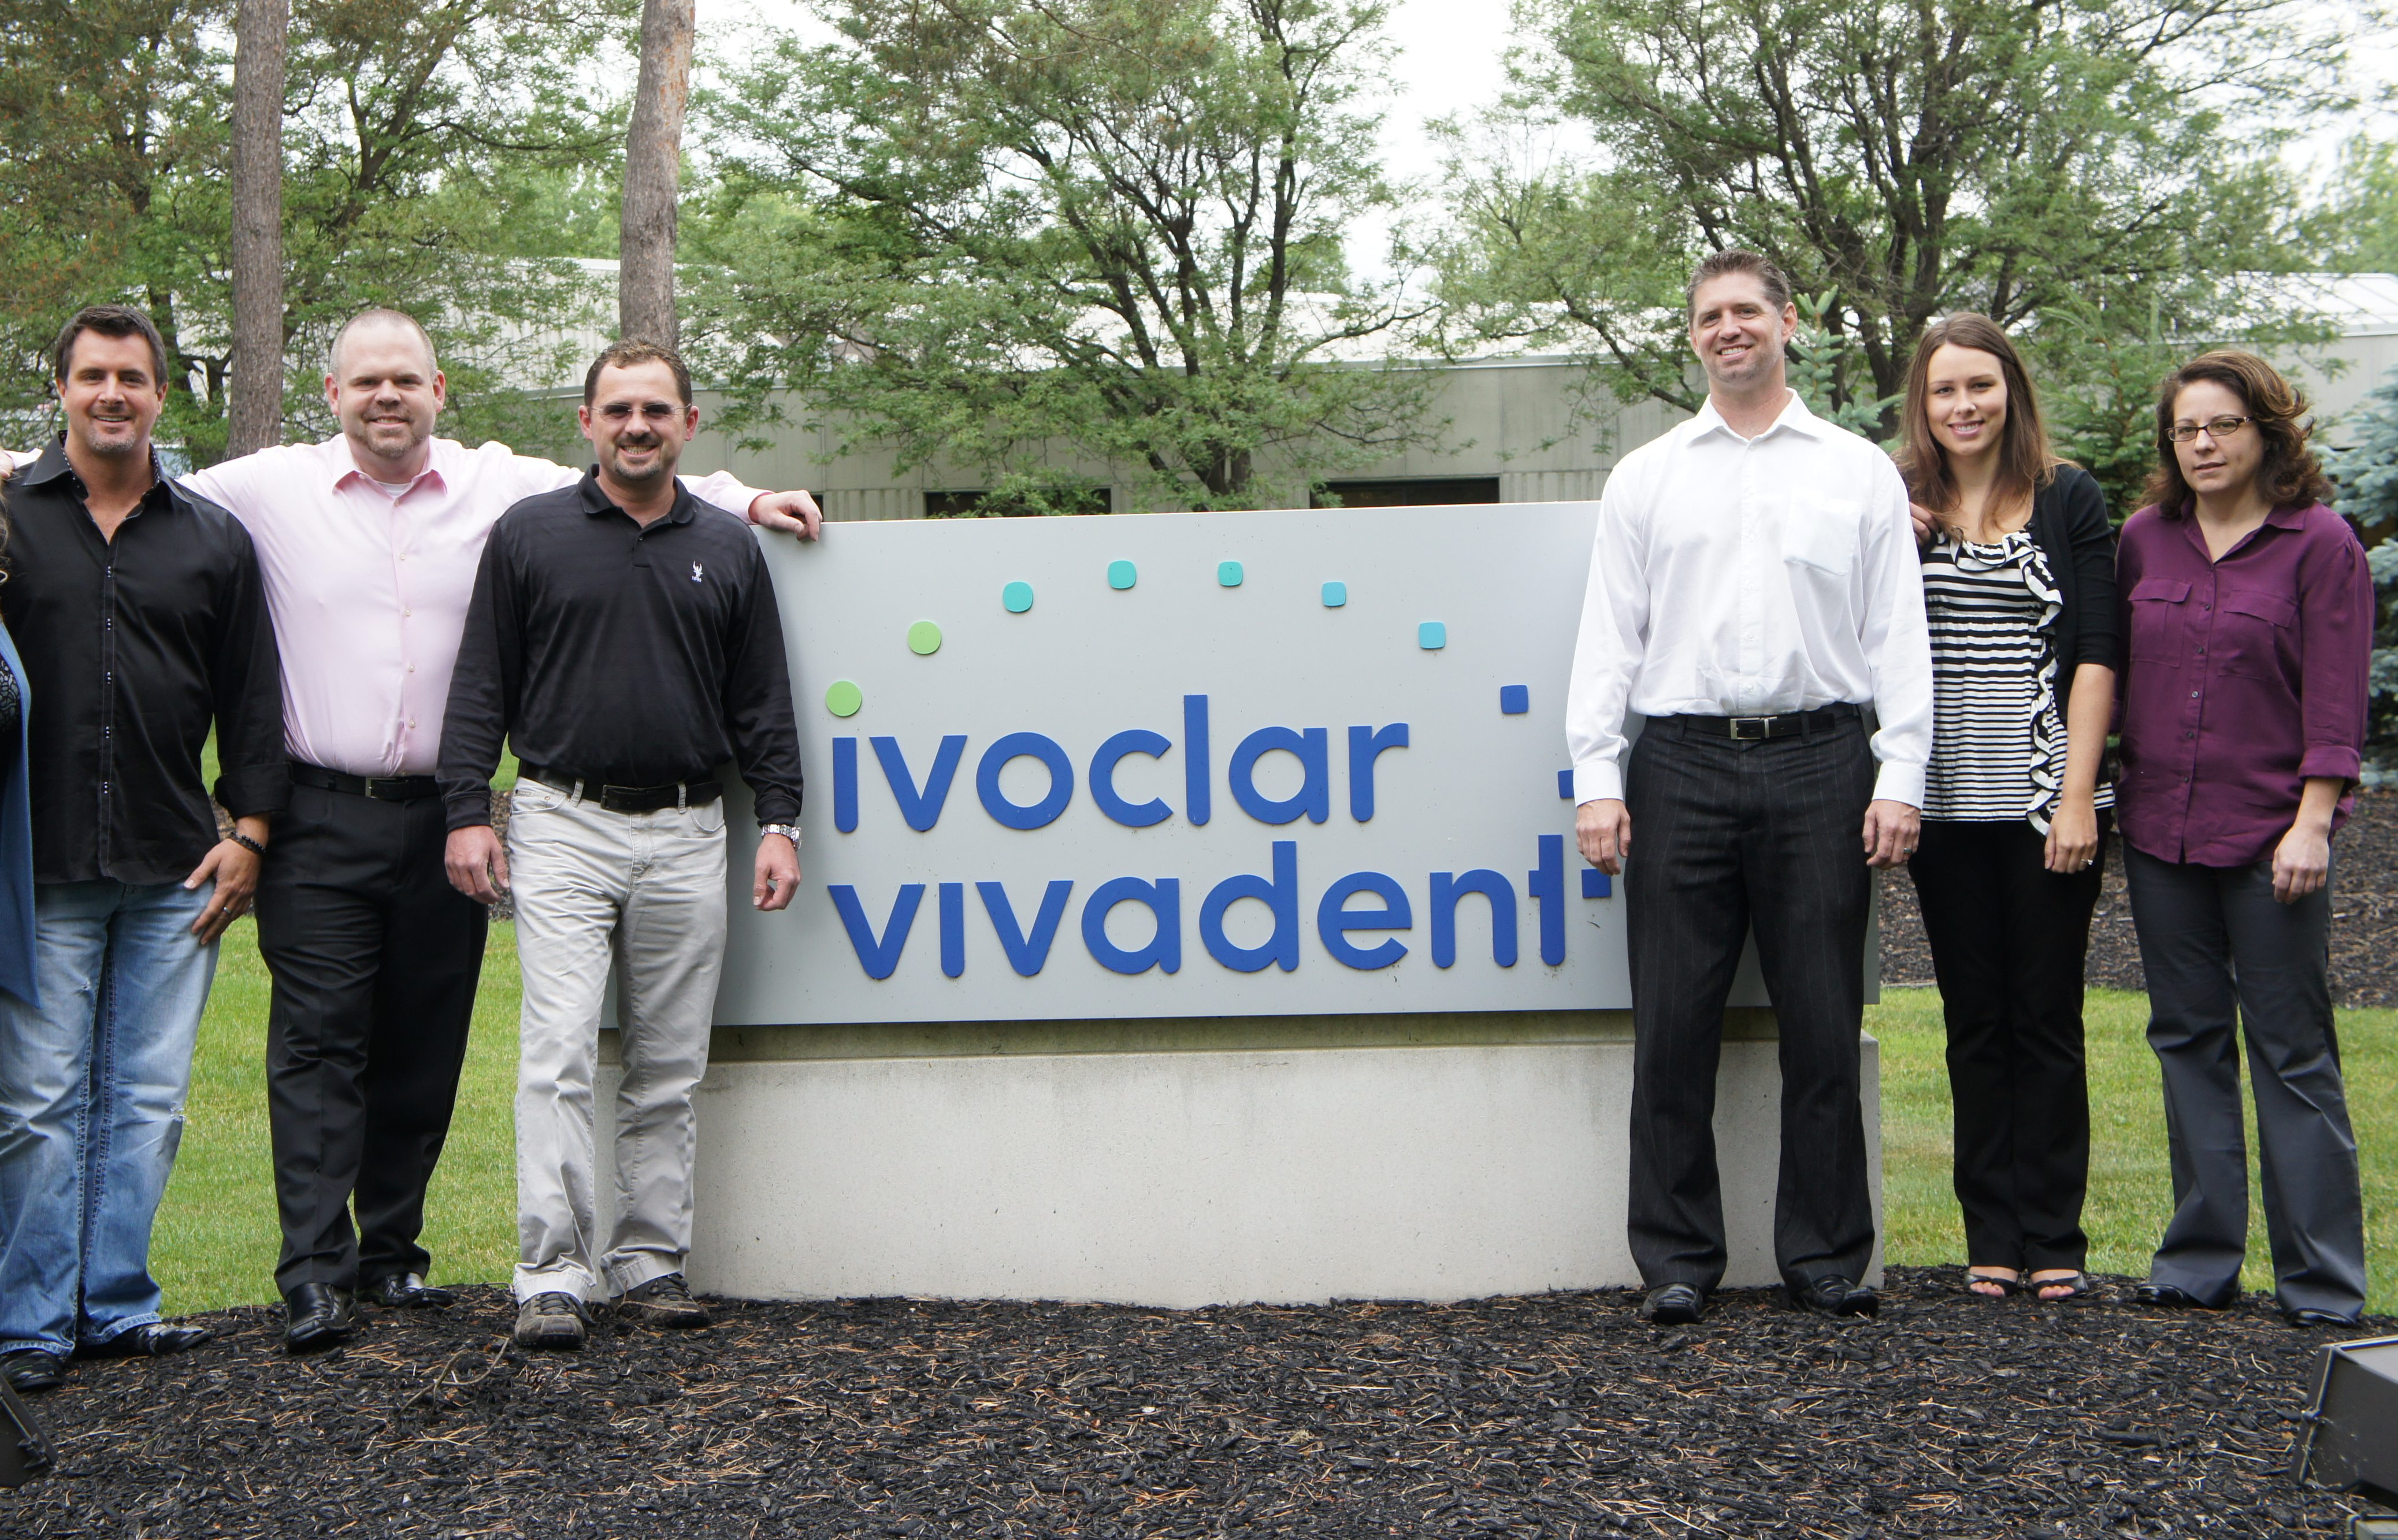 team in front of ivoclar vivadent sign